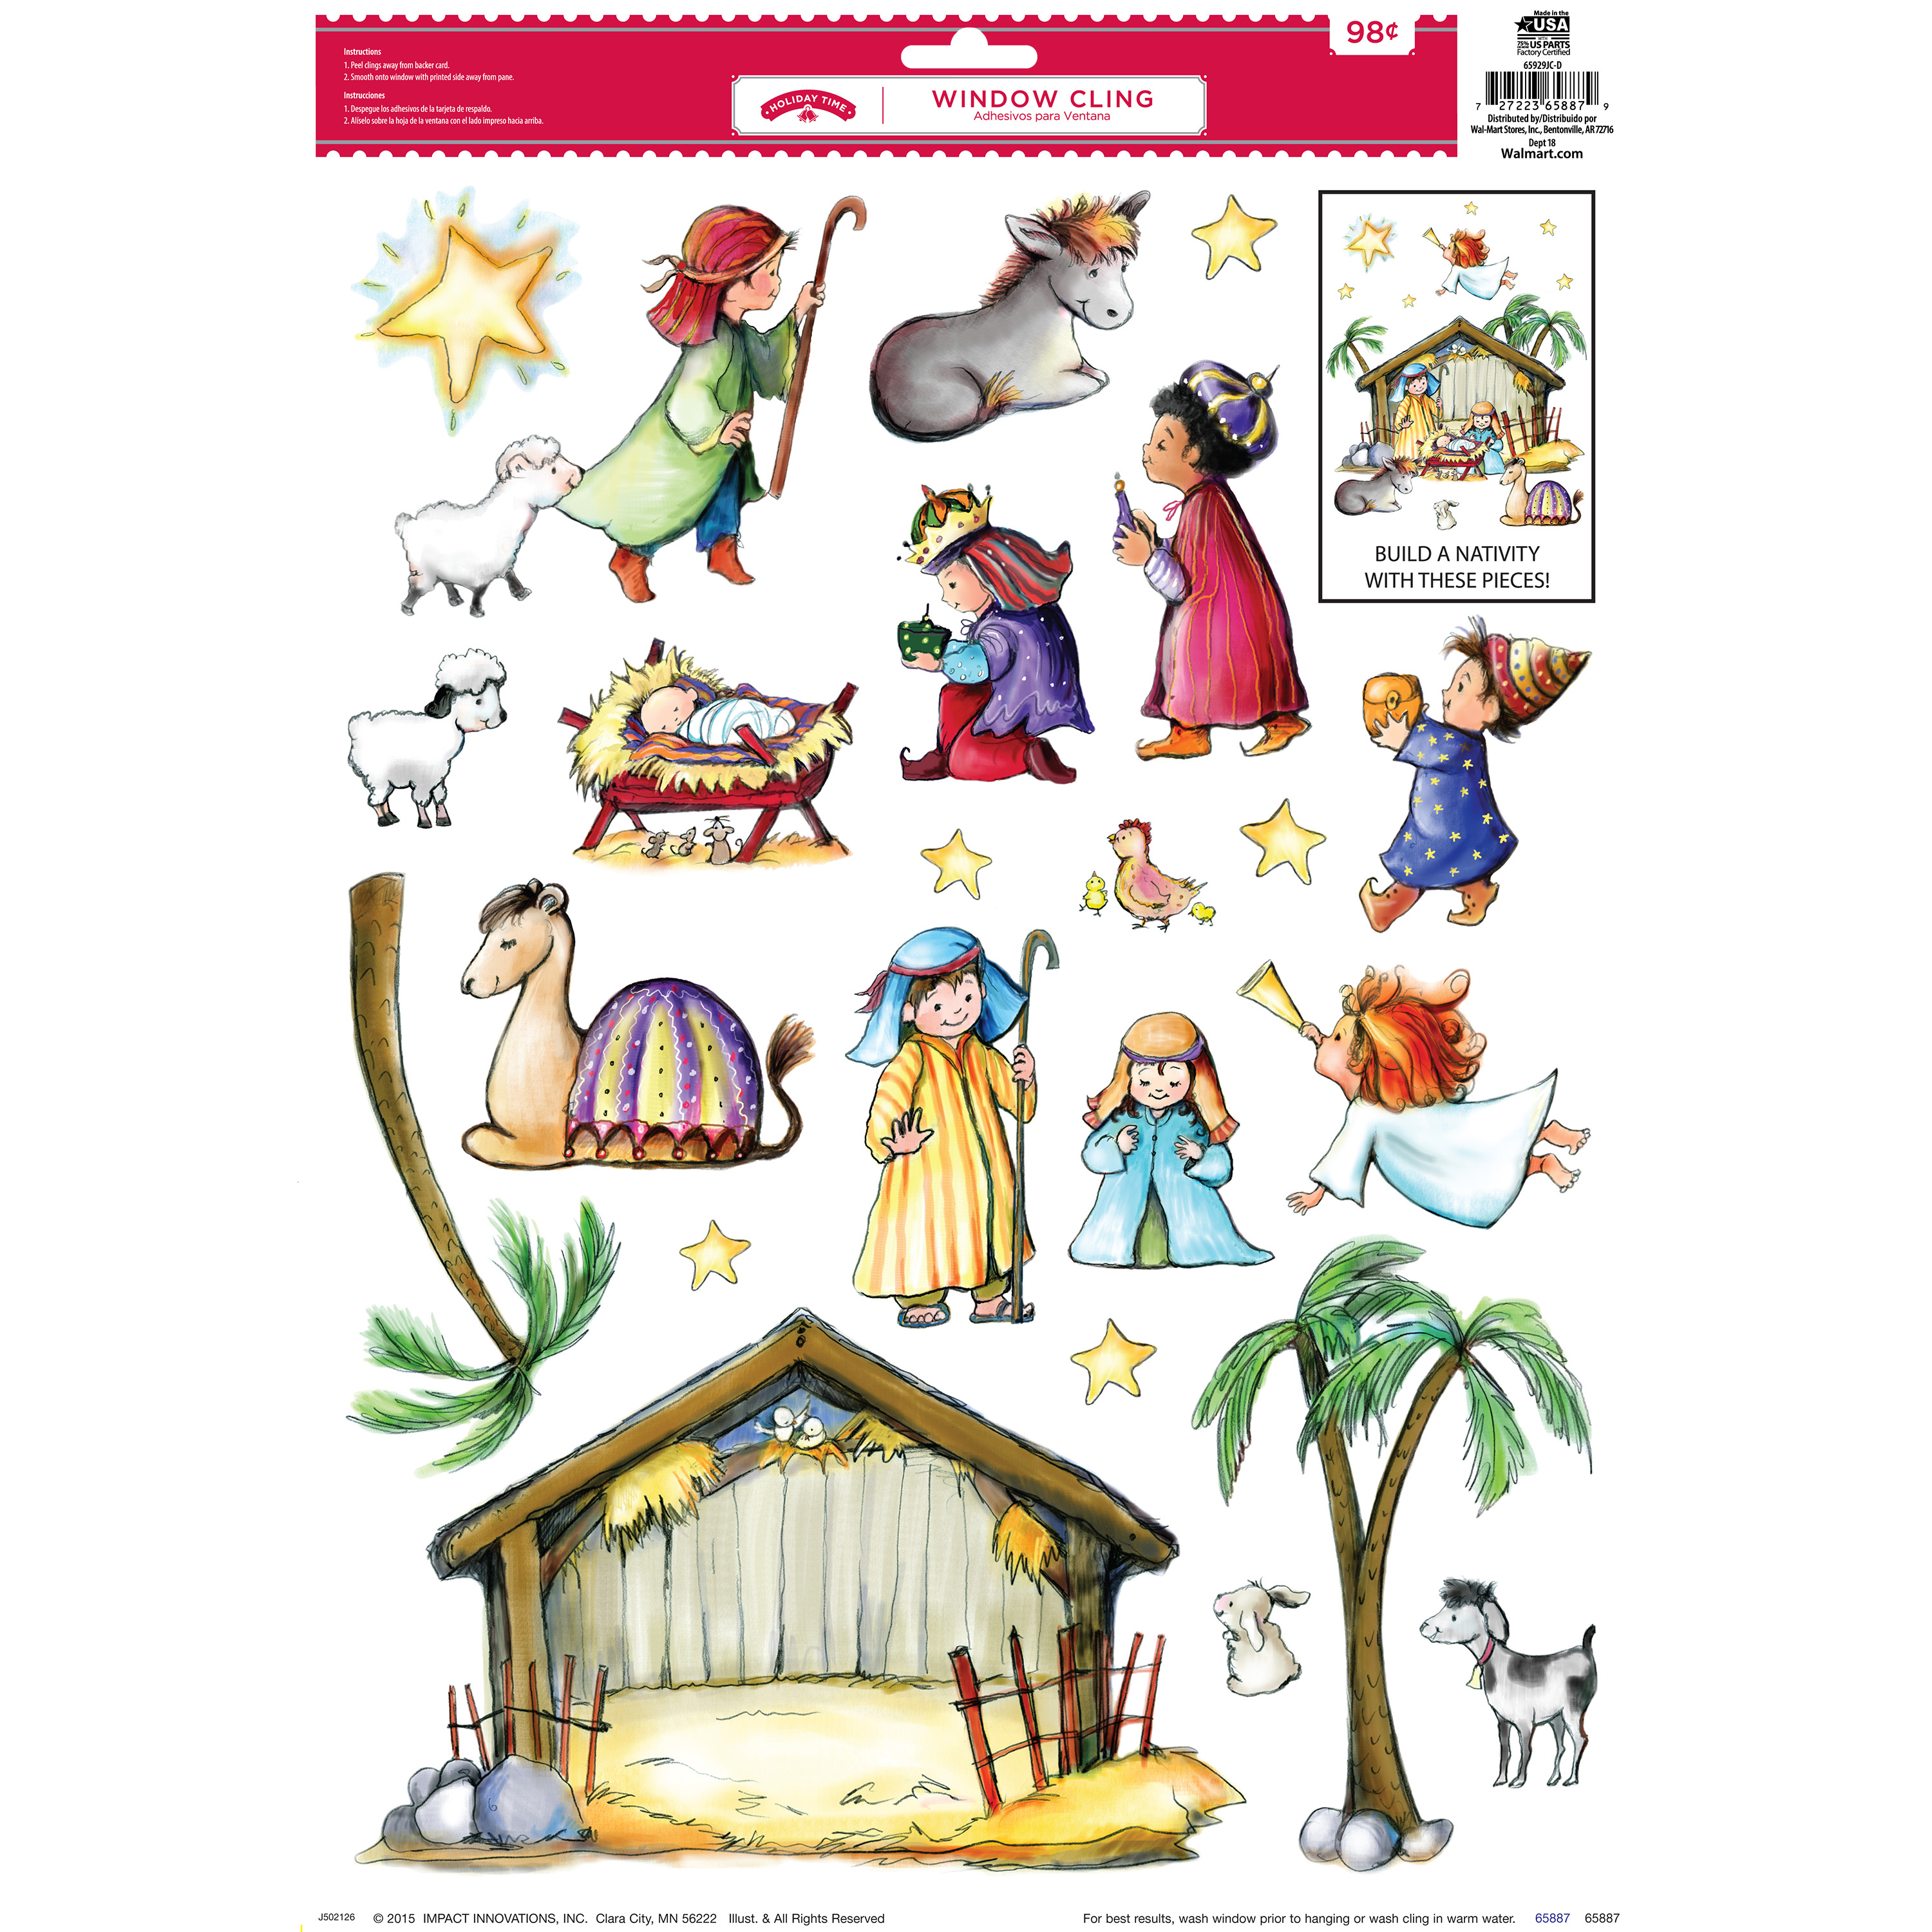 HOLIDAY TIME BUILD A NATIVITY MOREHEAD CLING, 12 X 17 INCH